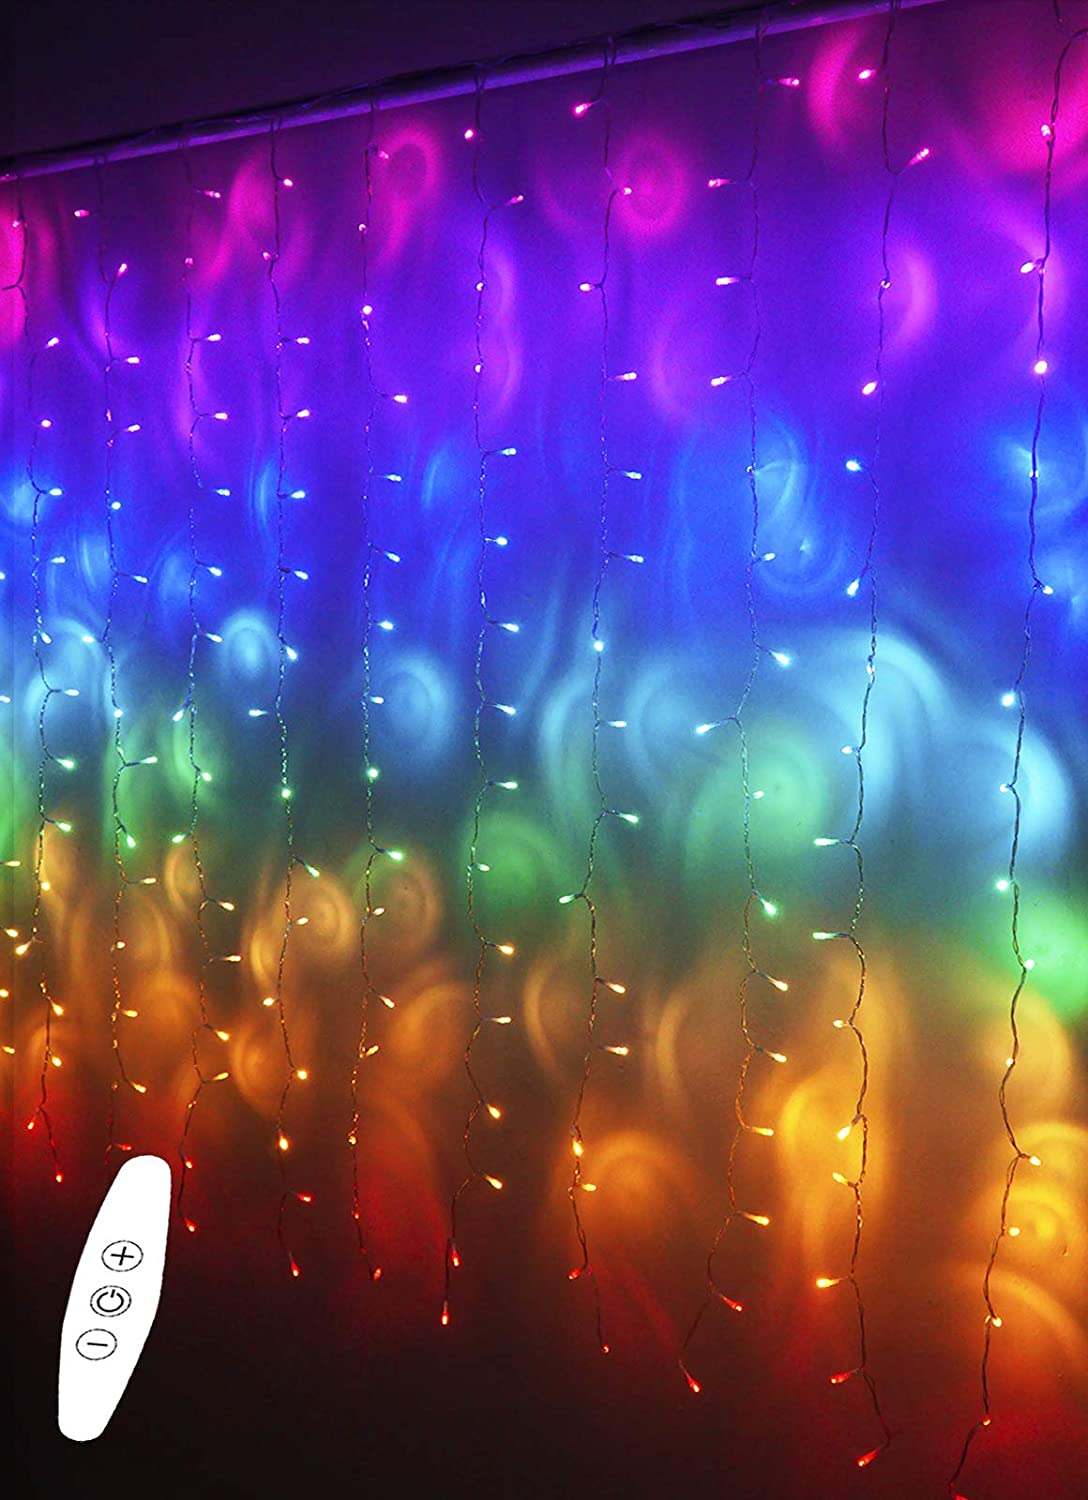 LED Rainbow String Curtain Lights with Dimmer Switch, USB Rainbow Fairy Icicle lights for Girls Room, Teen Room, Bedroom Decor, Mermaid & Unicorn Room Décor, Birthday,Party, Christmas Décor,Wall Decor